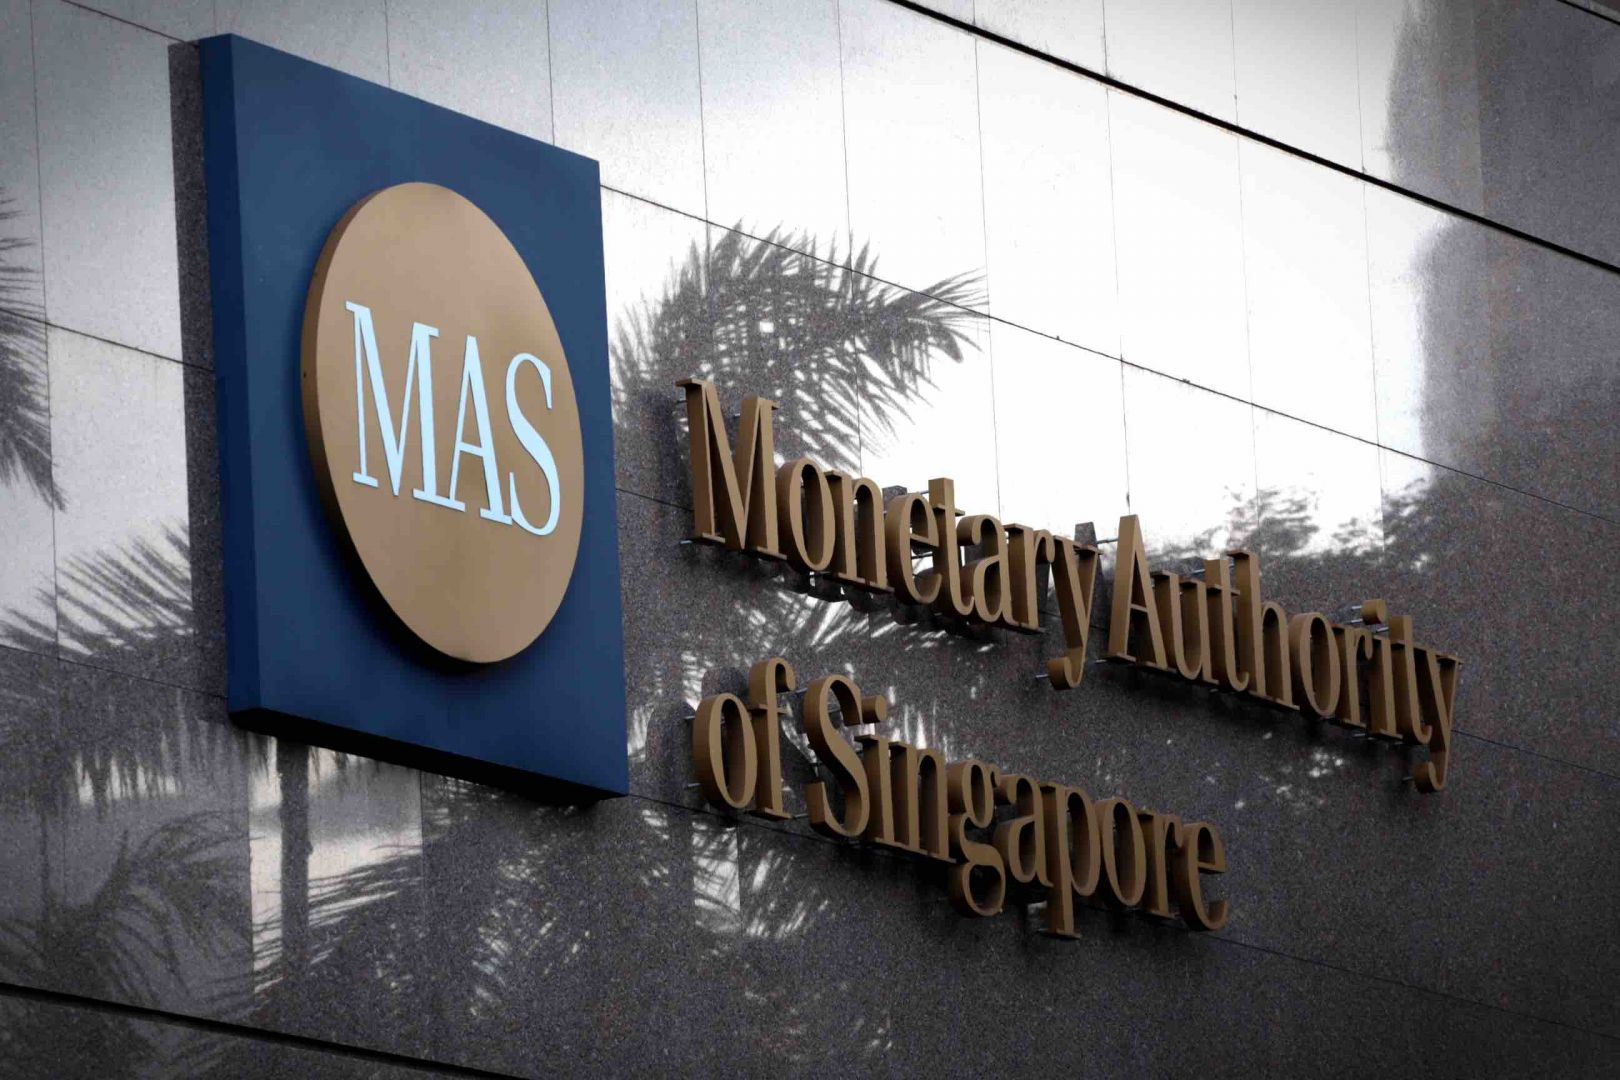 MAS predicts that the turnaround in the global IT cycle will continue to benefit Singapore's domestic semiconductor and precision engineering industries